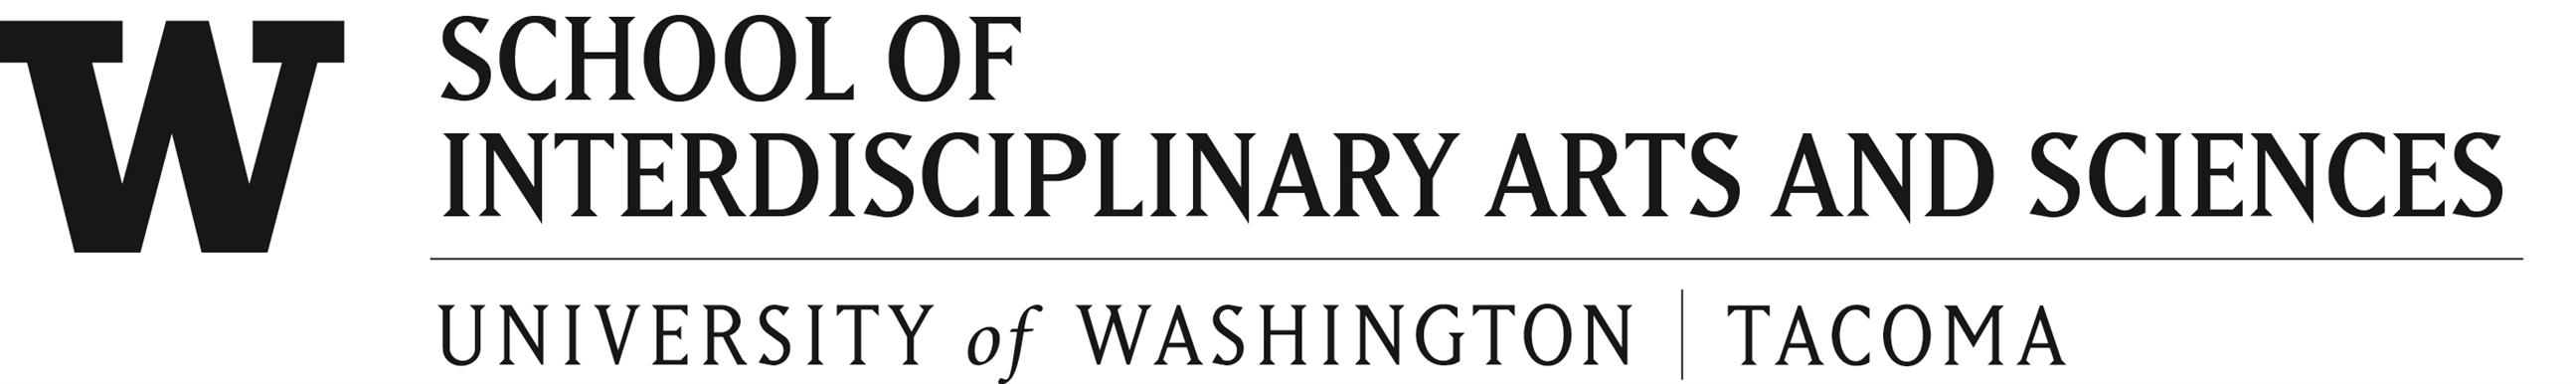 logo of the School of Interdisciplinary Arts and Sciences at UW Tacoma